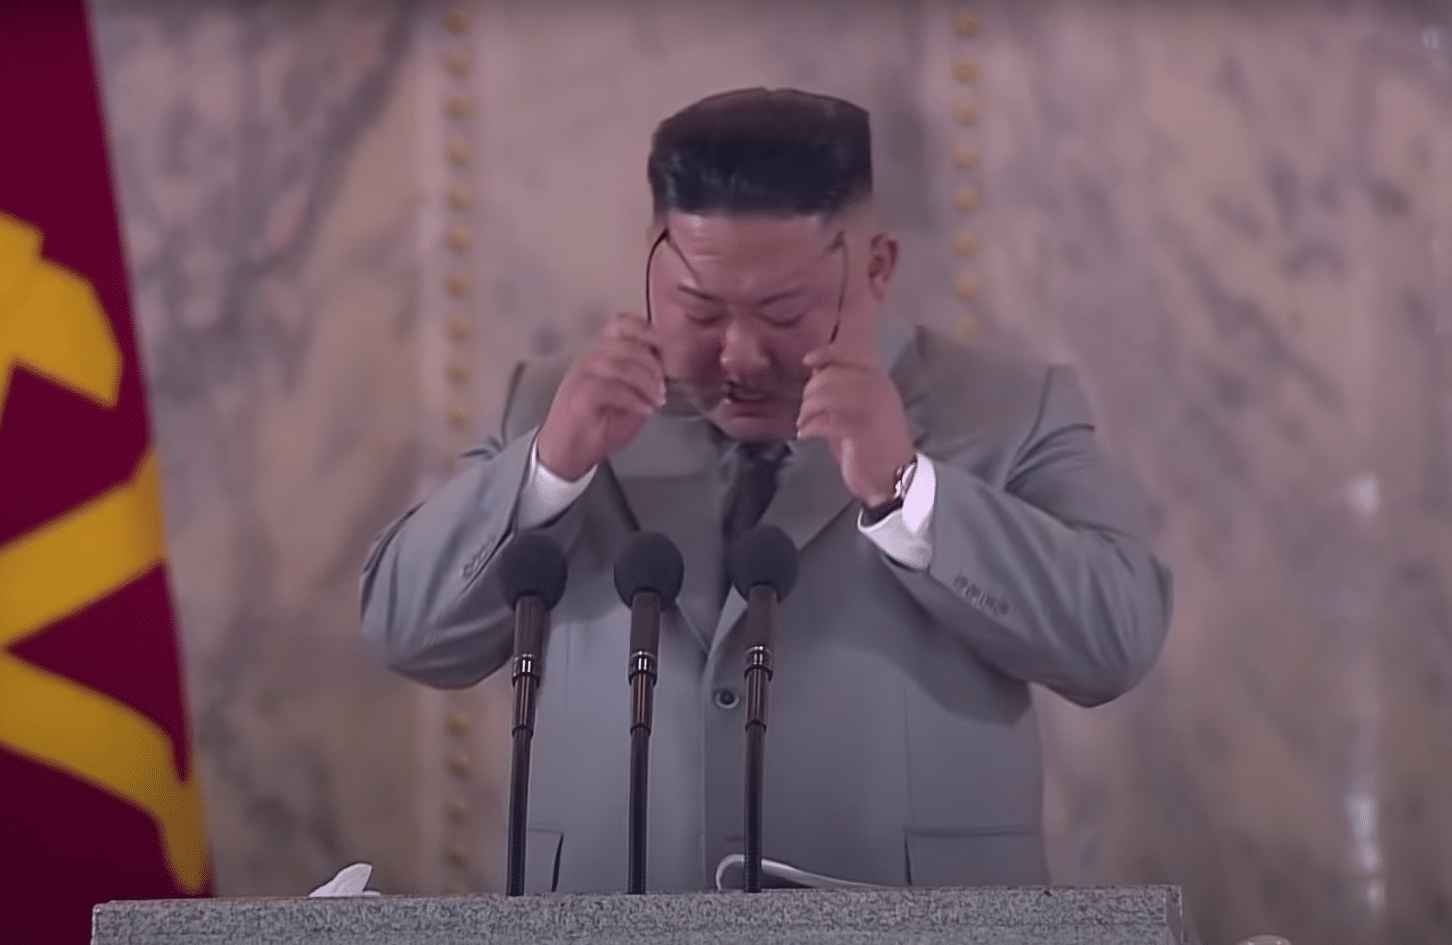 Video: Kim Jong Un cries, tells North Koreans 'I am really sorry' in public speech